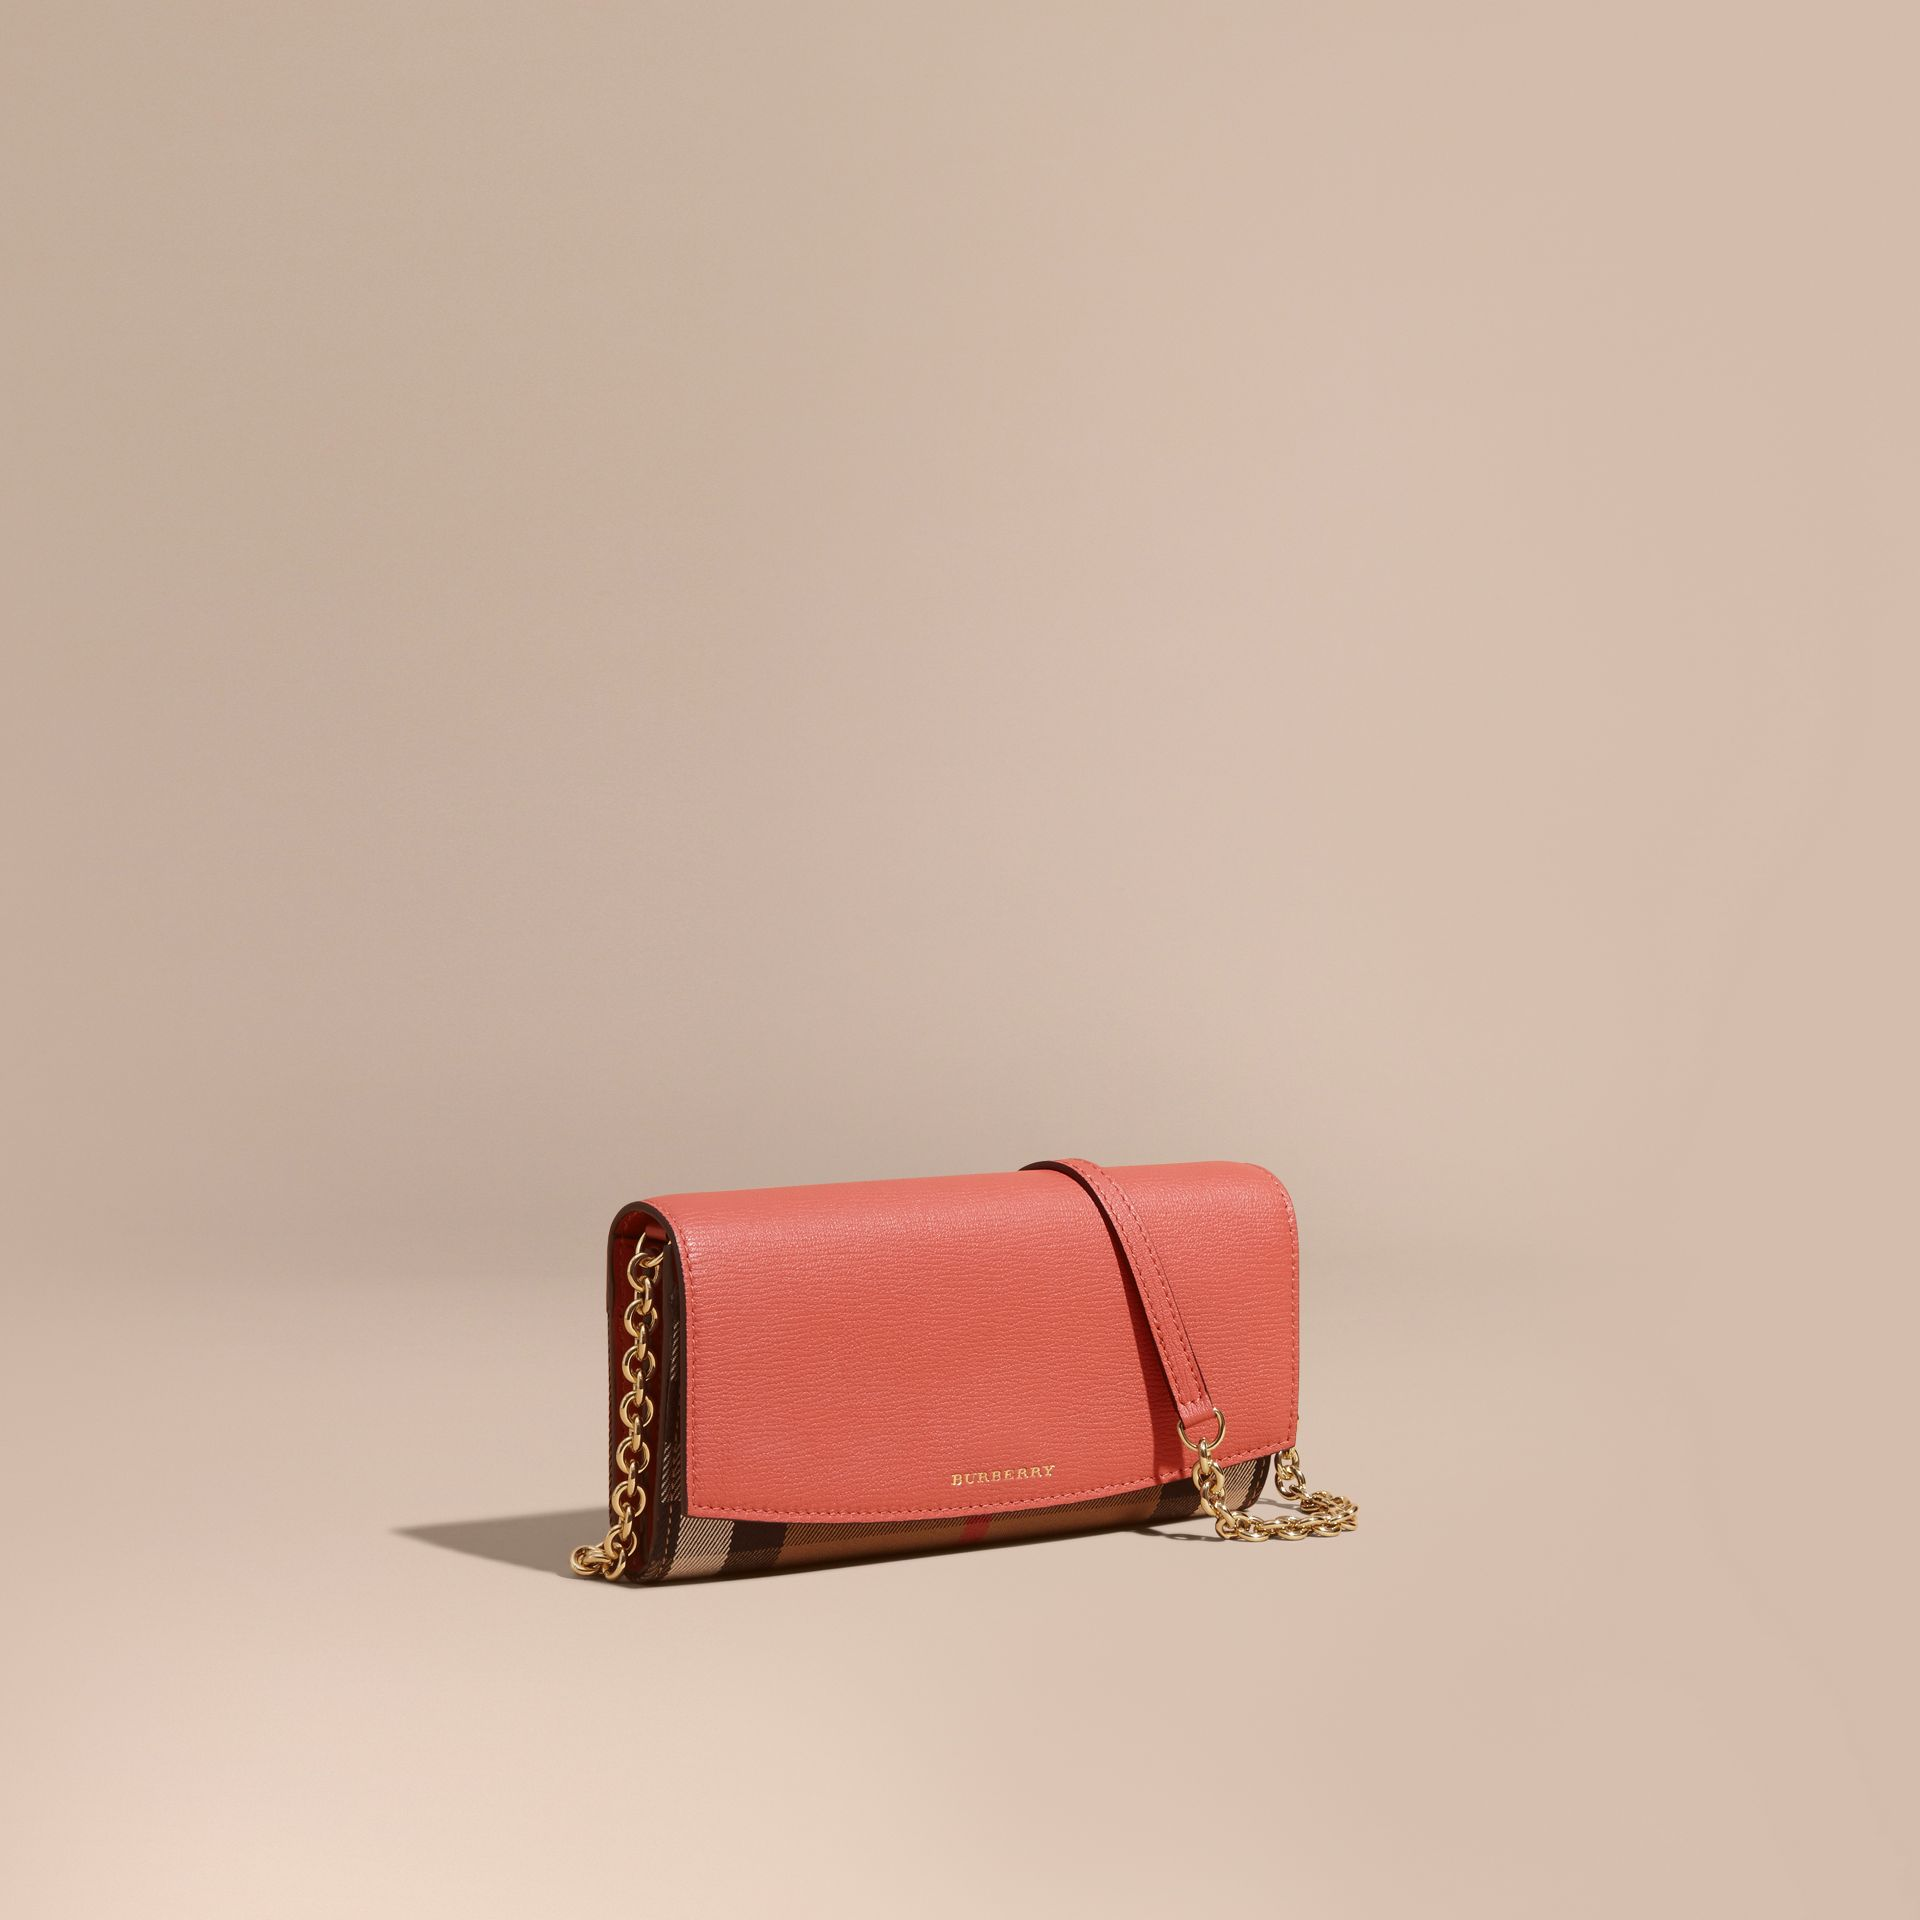 House Check and Leather Wallet with Chain in Cinnamon Red - Women | Burberry Australia - gallery image 1